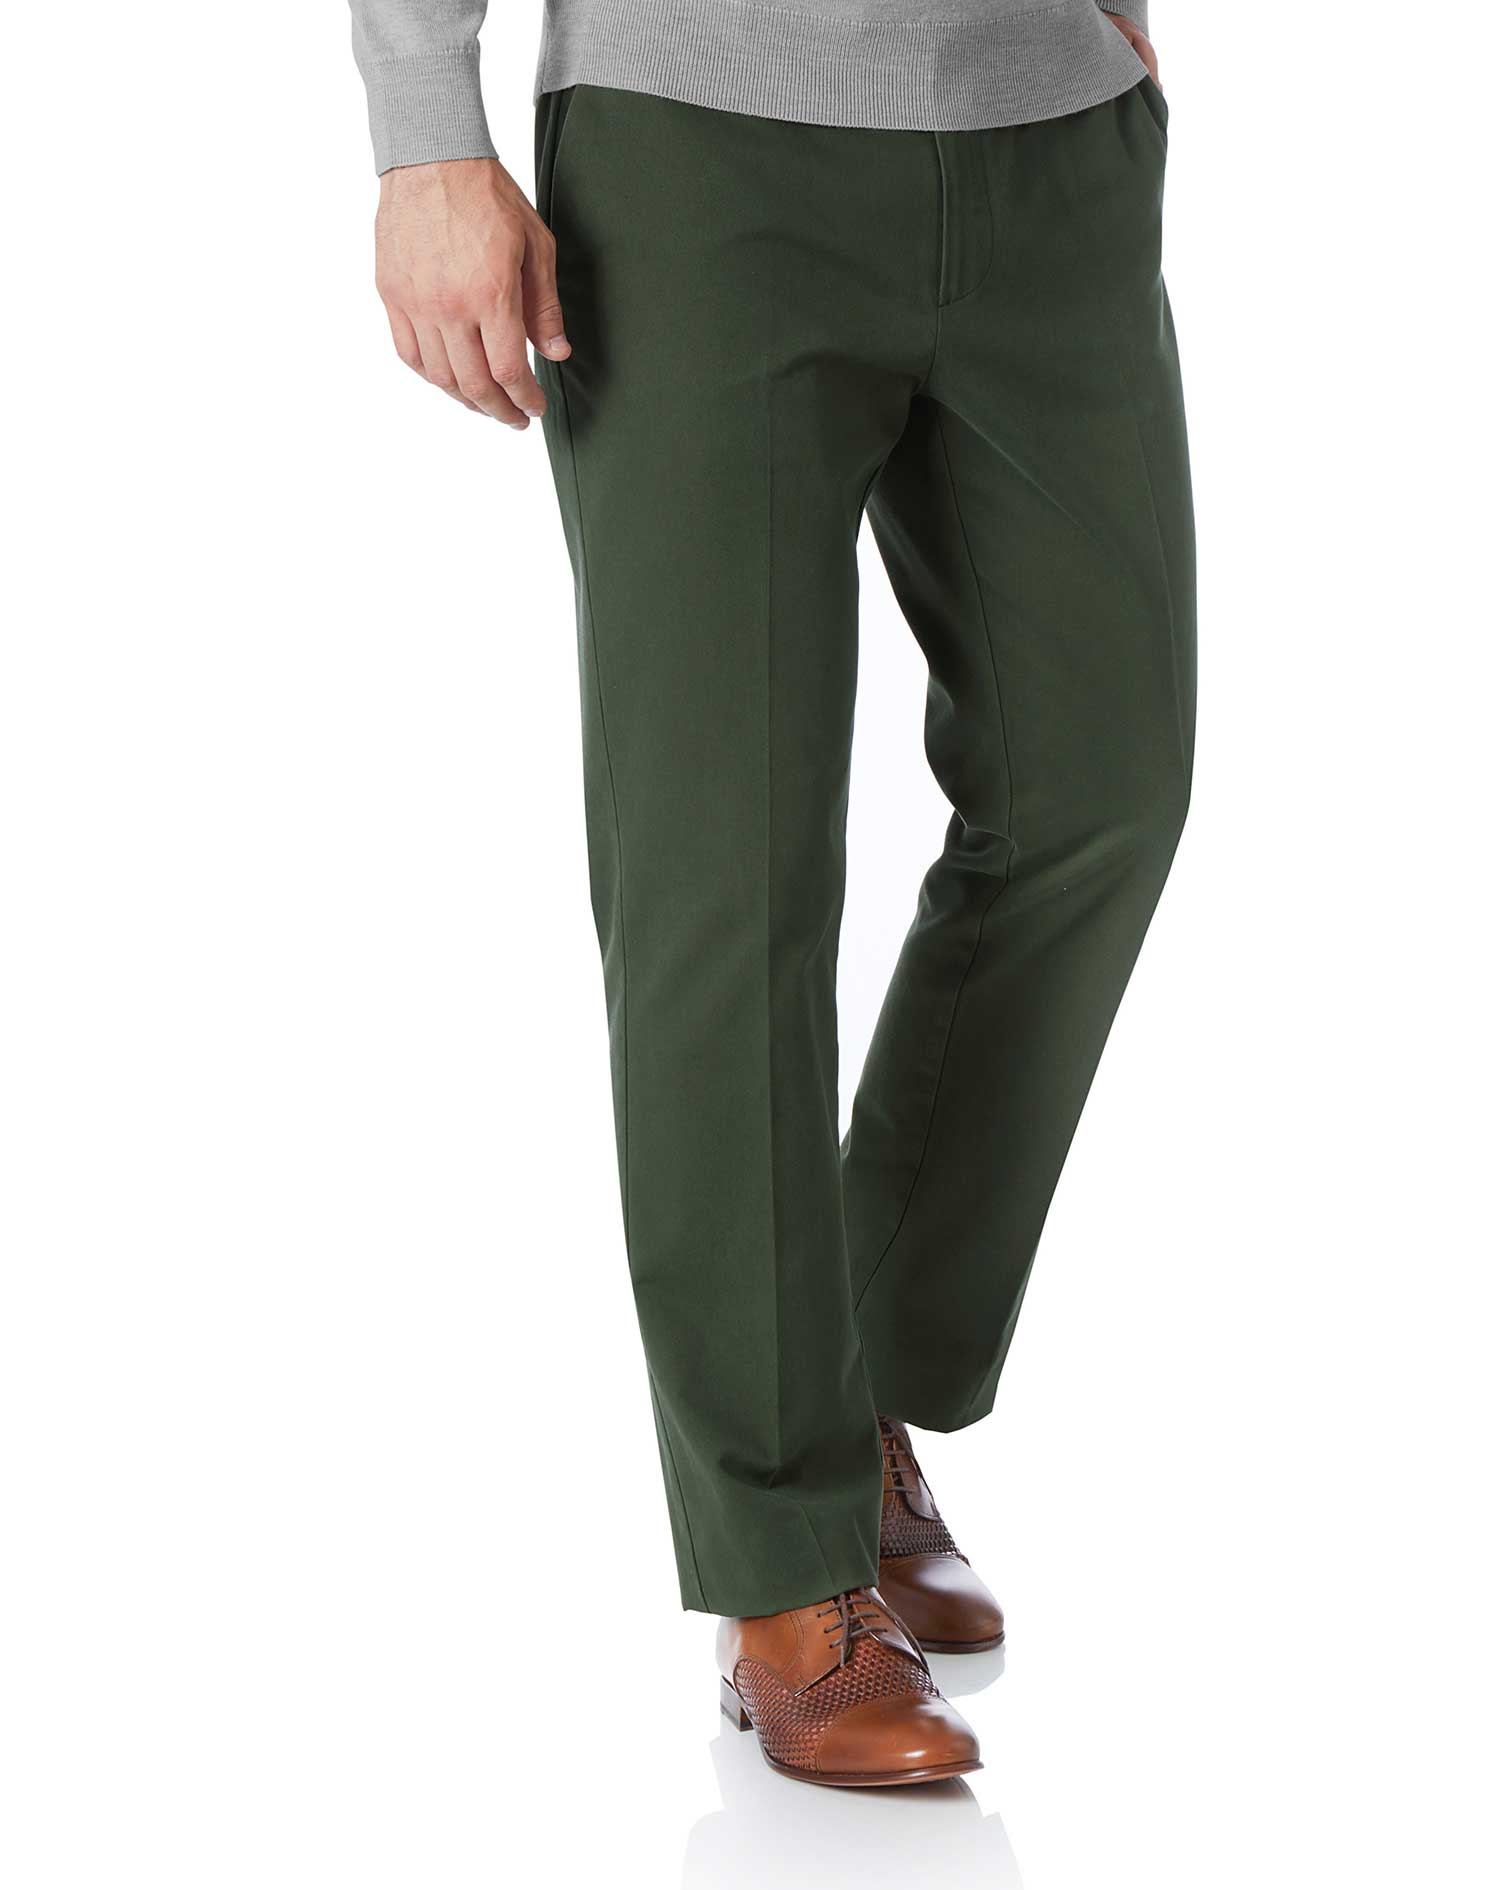 Dark Green Slim Fit Flat Front Non-Iron Cotton Chino Trousers Size W38 L30 by Charles Tyrwhitt